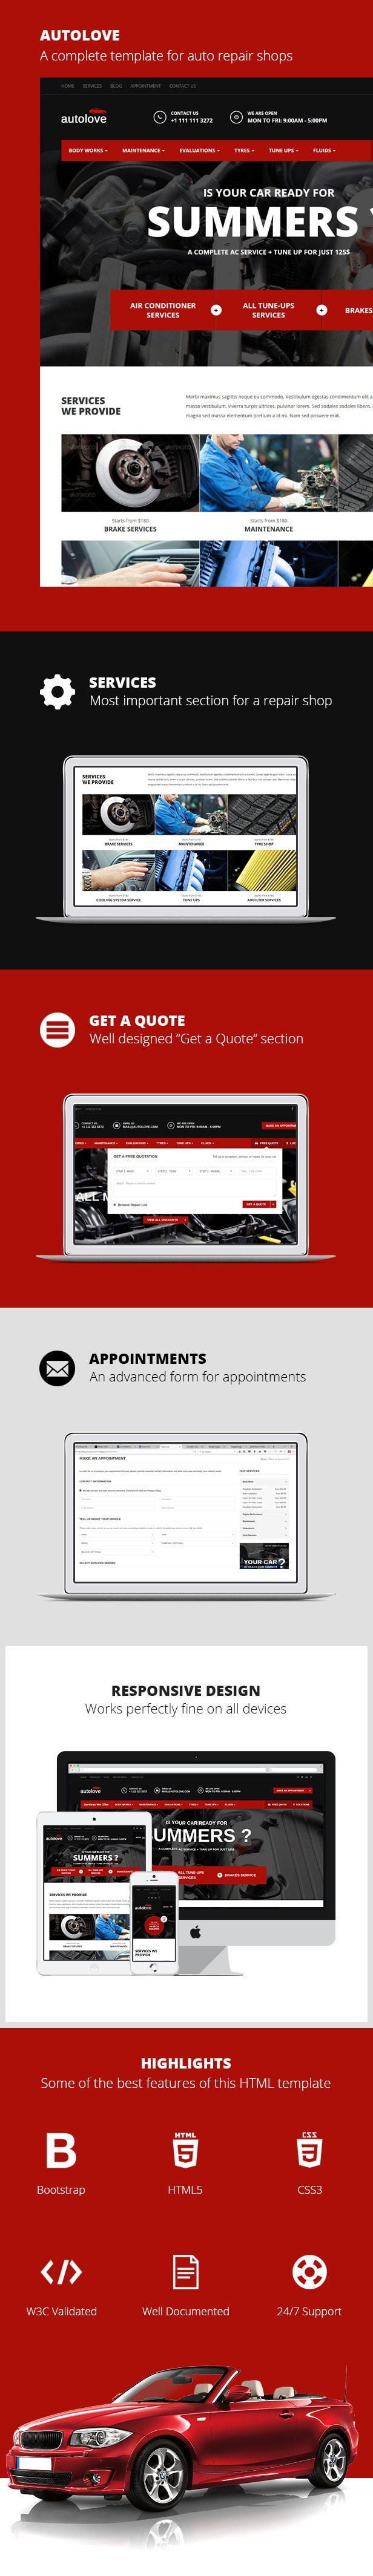 Autolove - Vehicle Repair Mechanic Shop Template